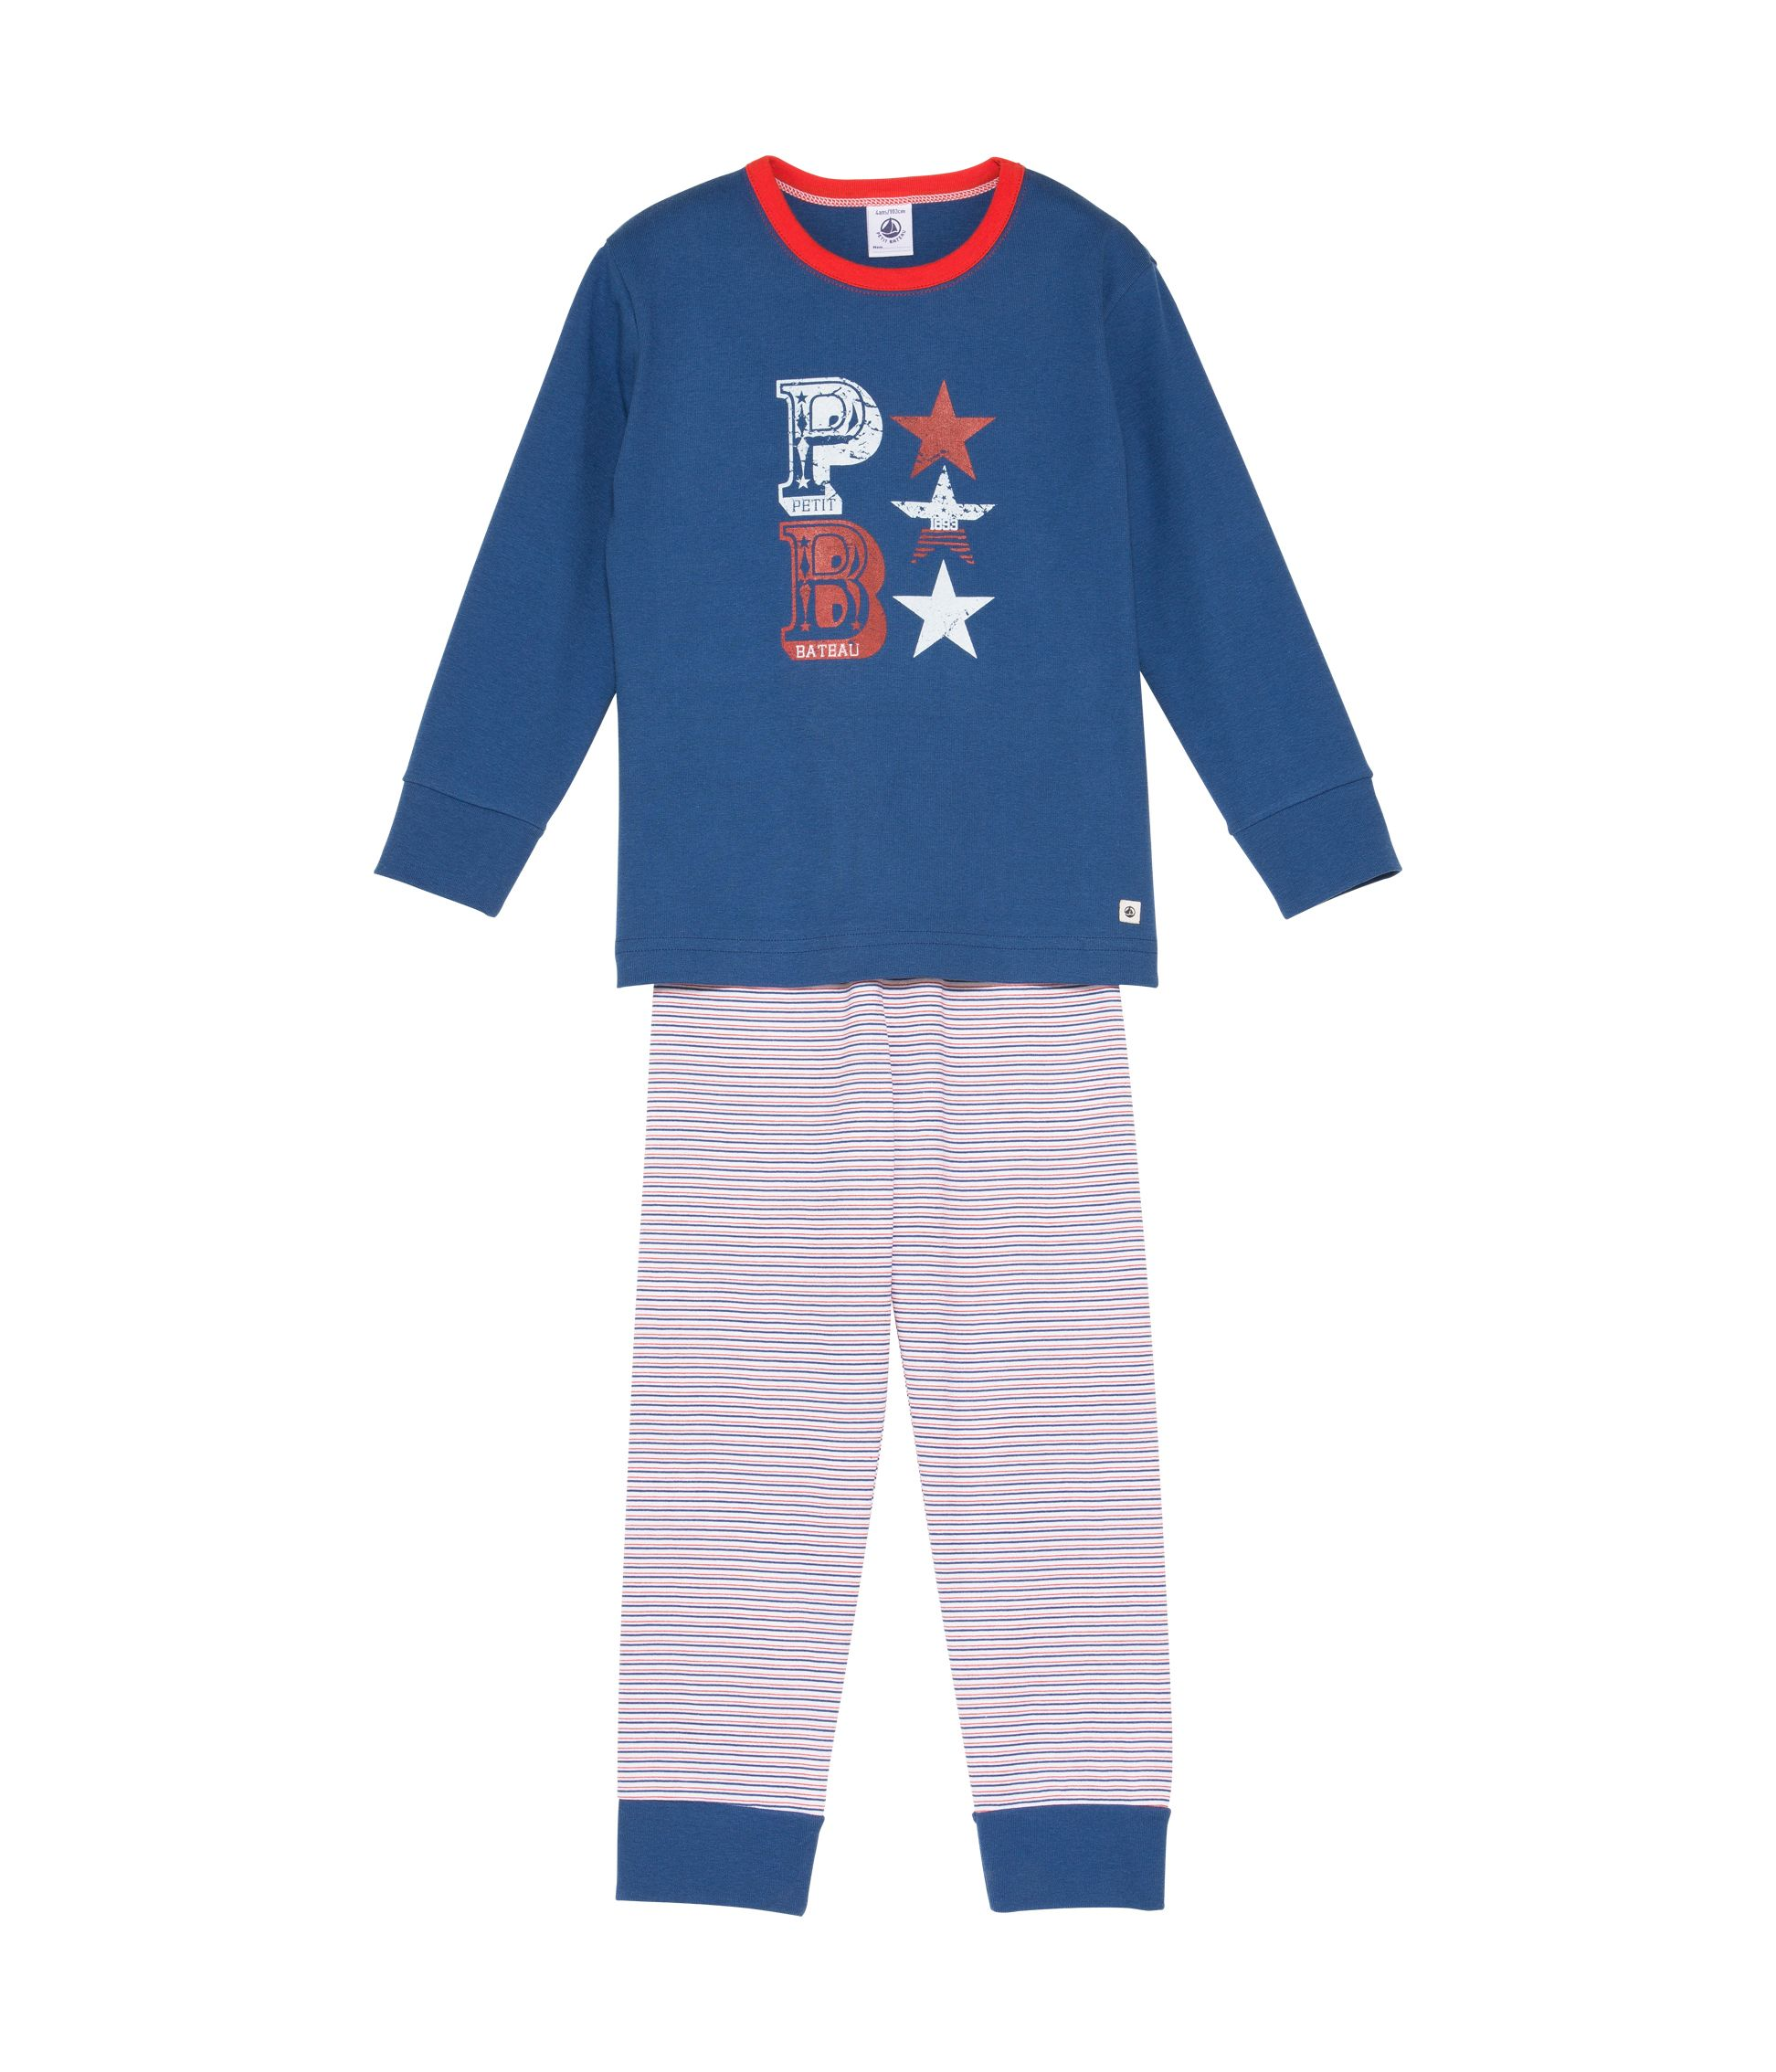 Boys top and jersey bottoms pyjamas